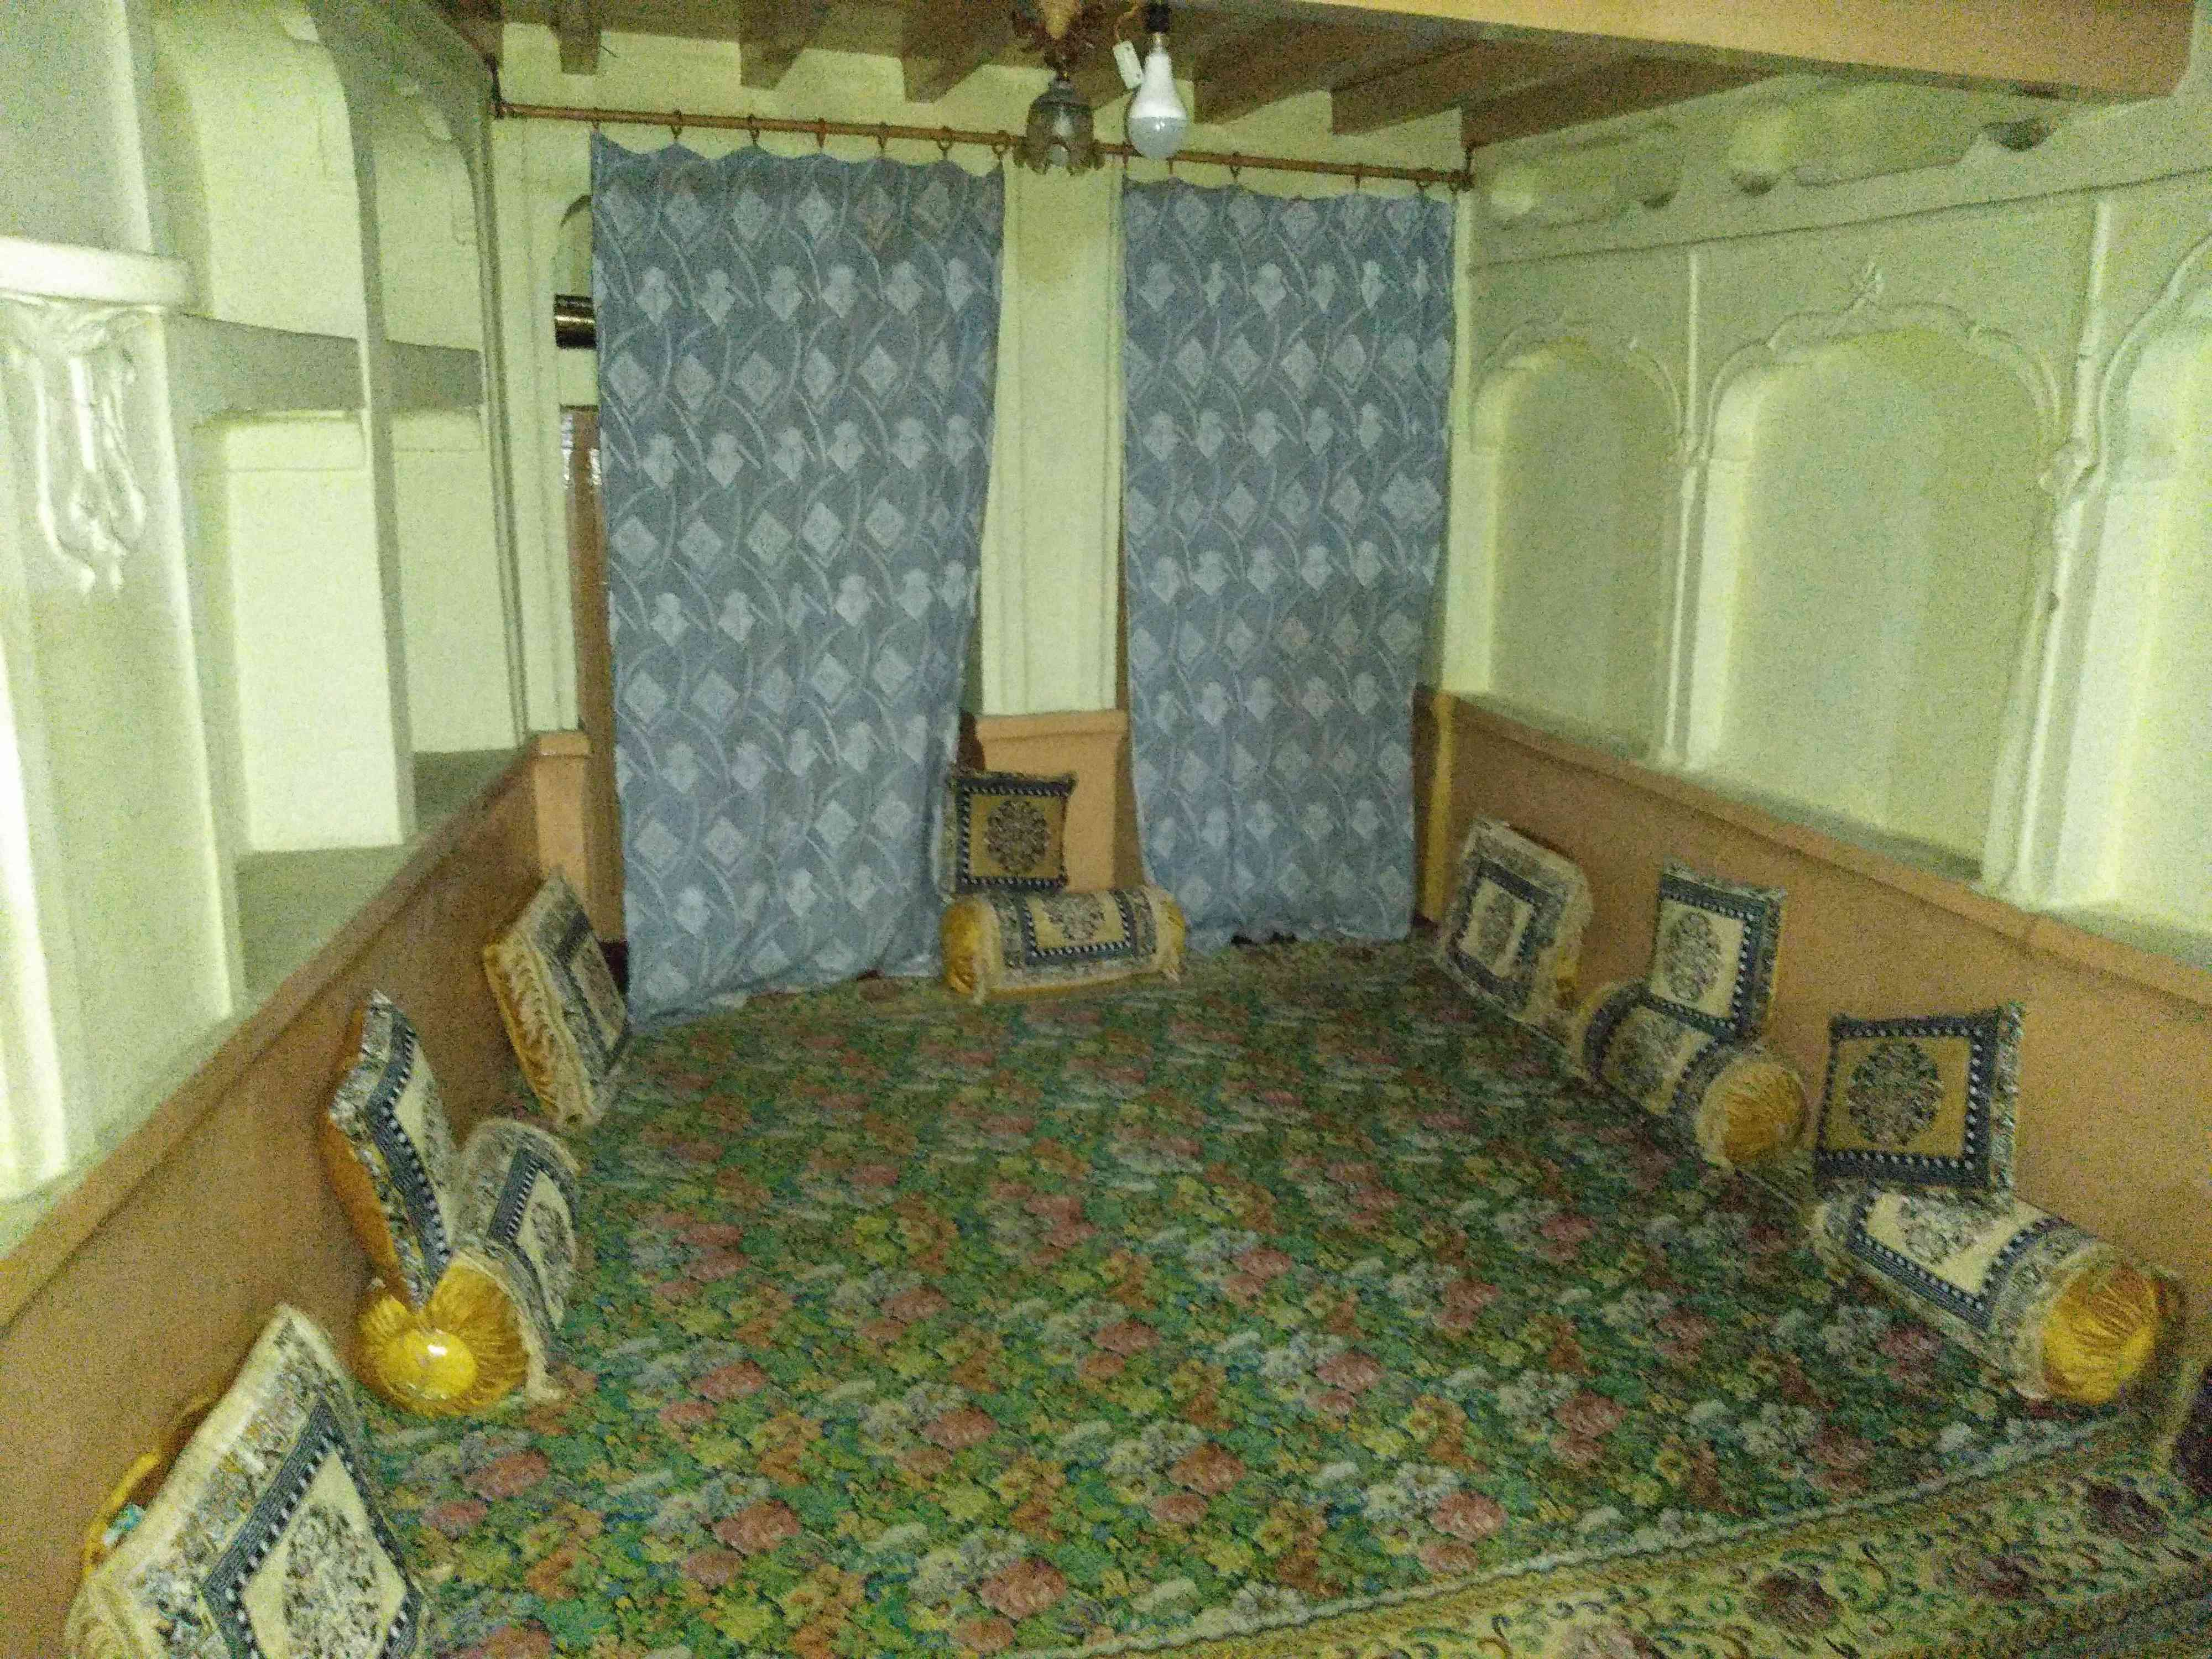 Ahtisham Sofi's room at his home in Khanyar, Srinagar. Photo credit: Safwat Zargar